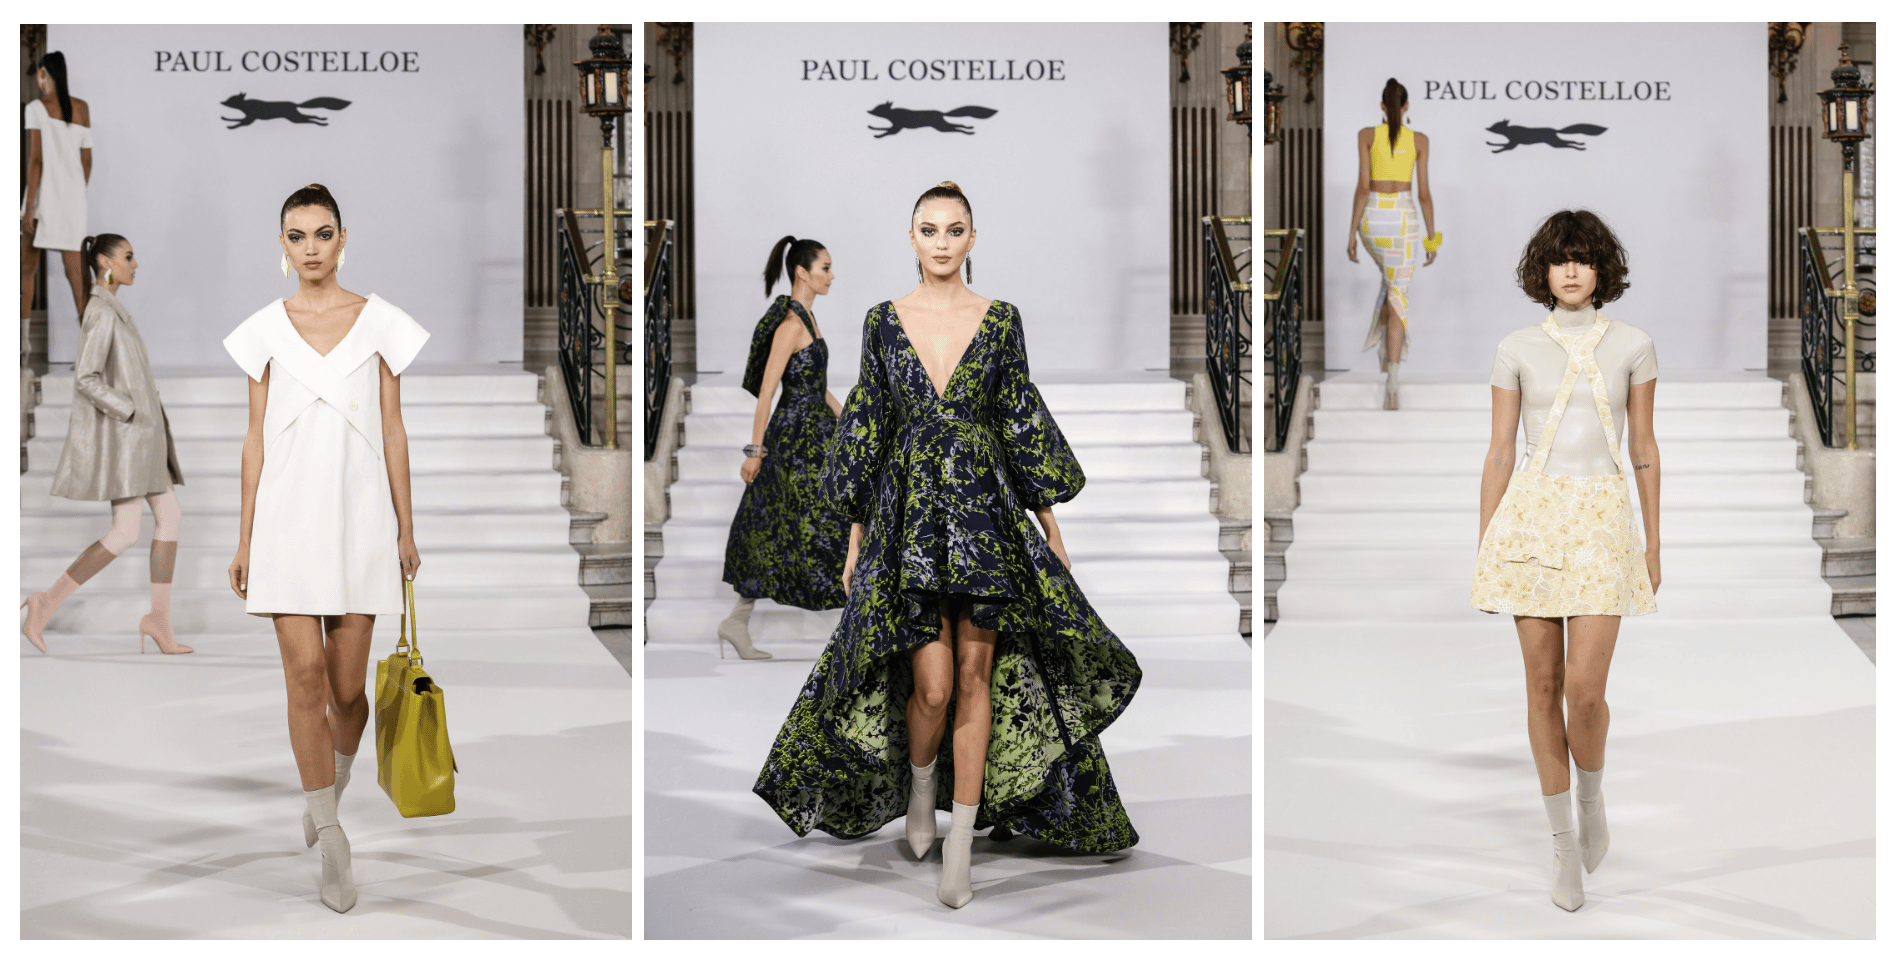 LFW Paul Costelloe Ego Shoes